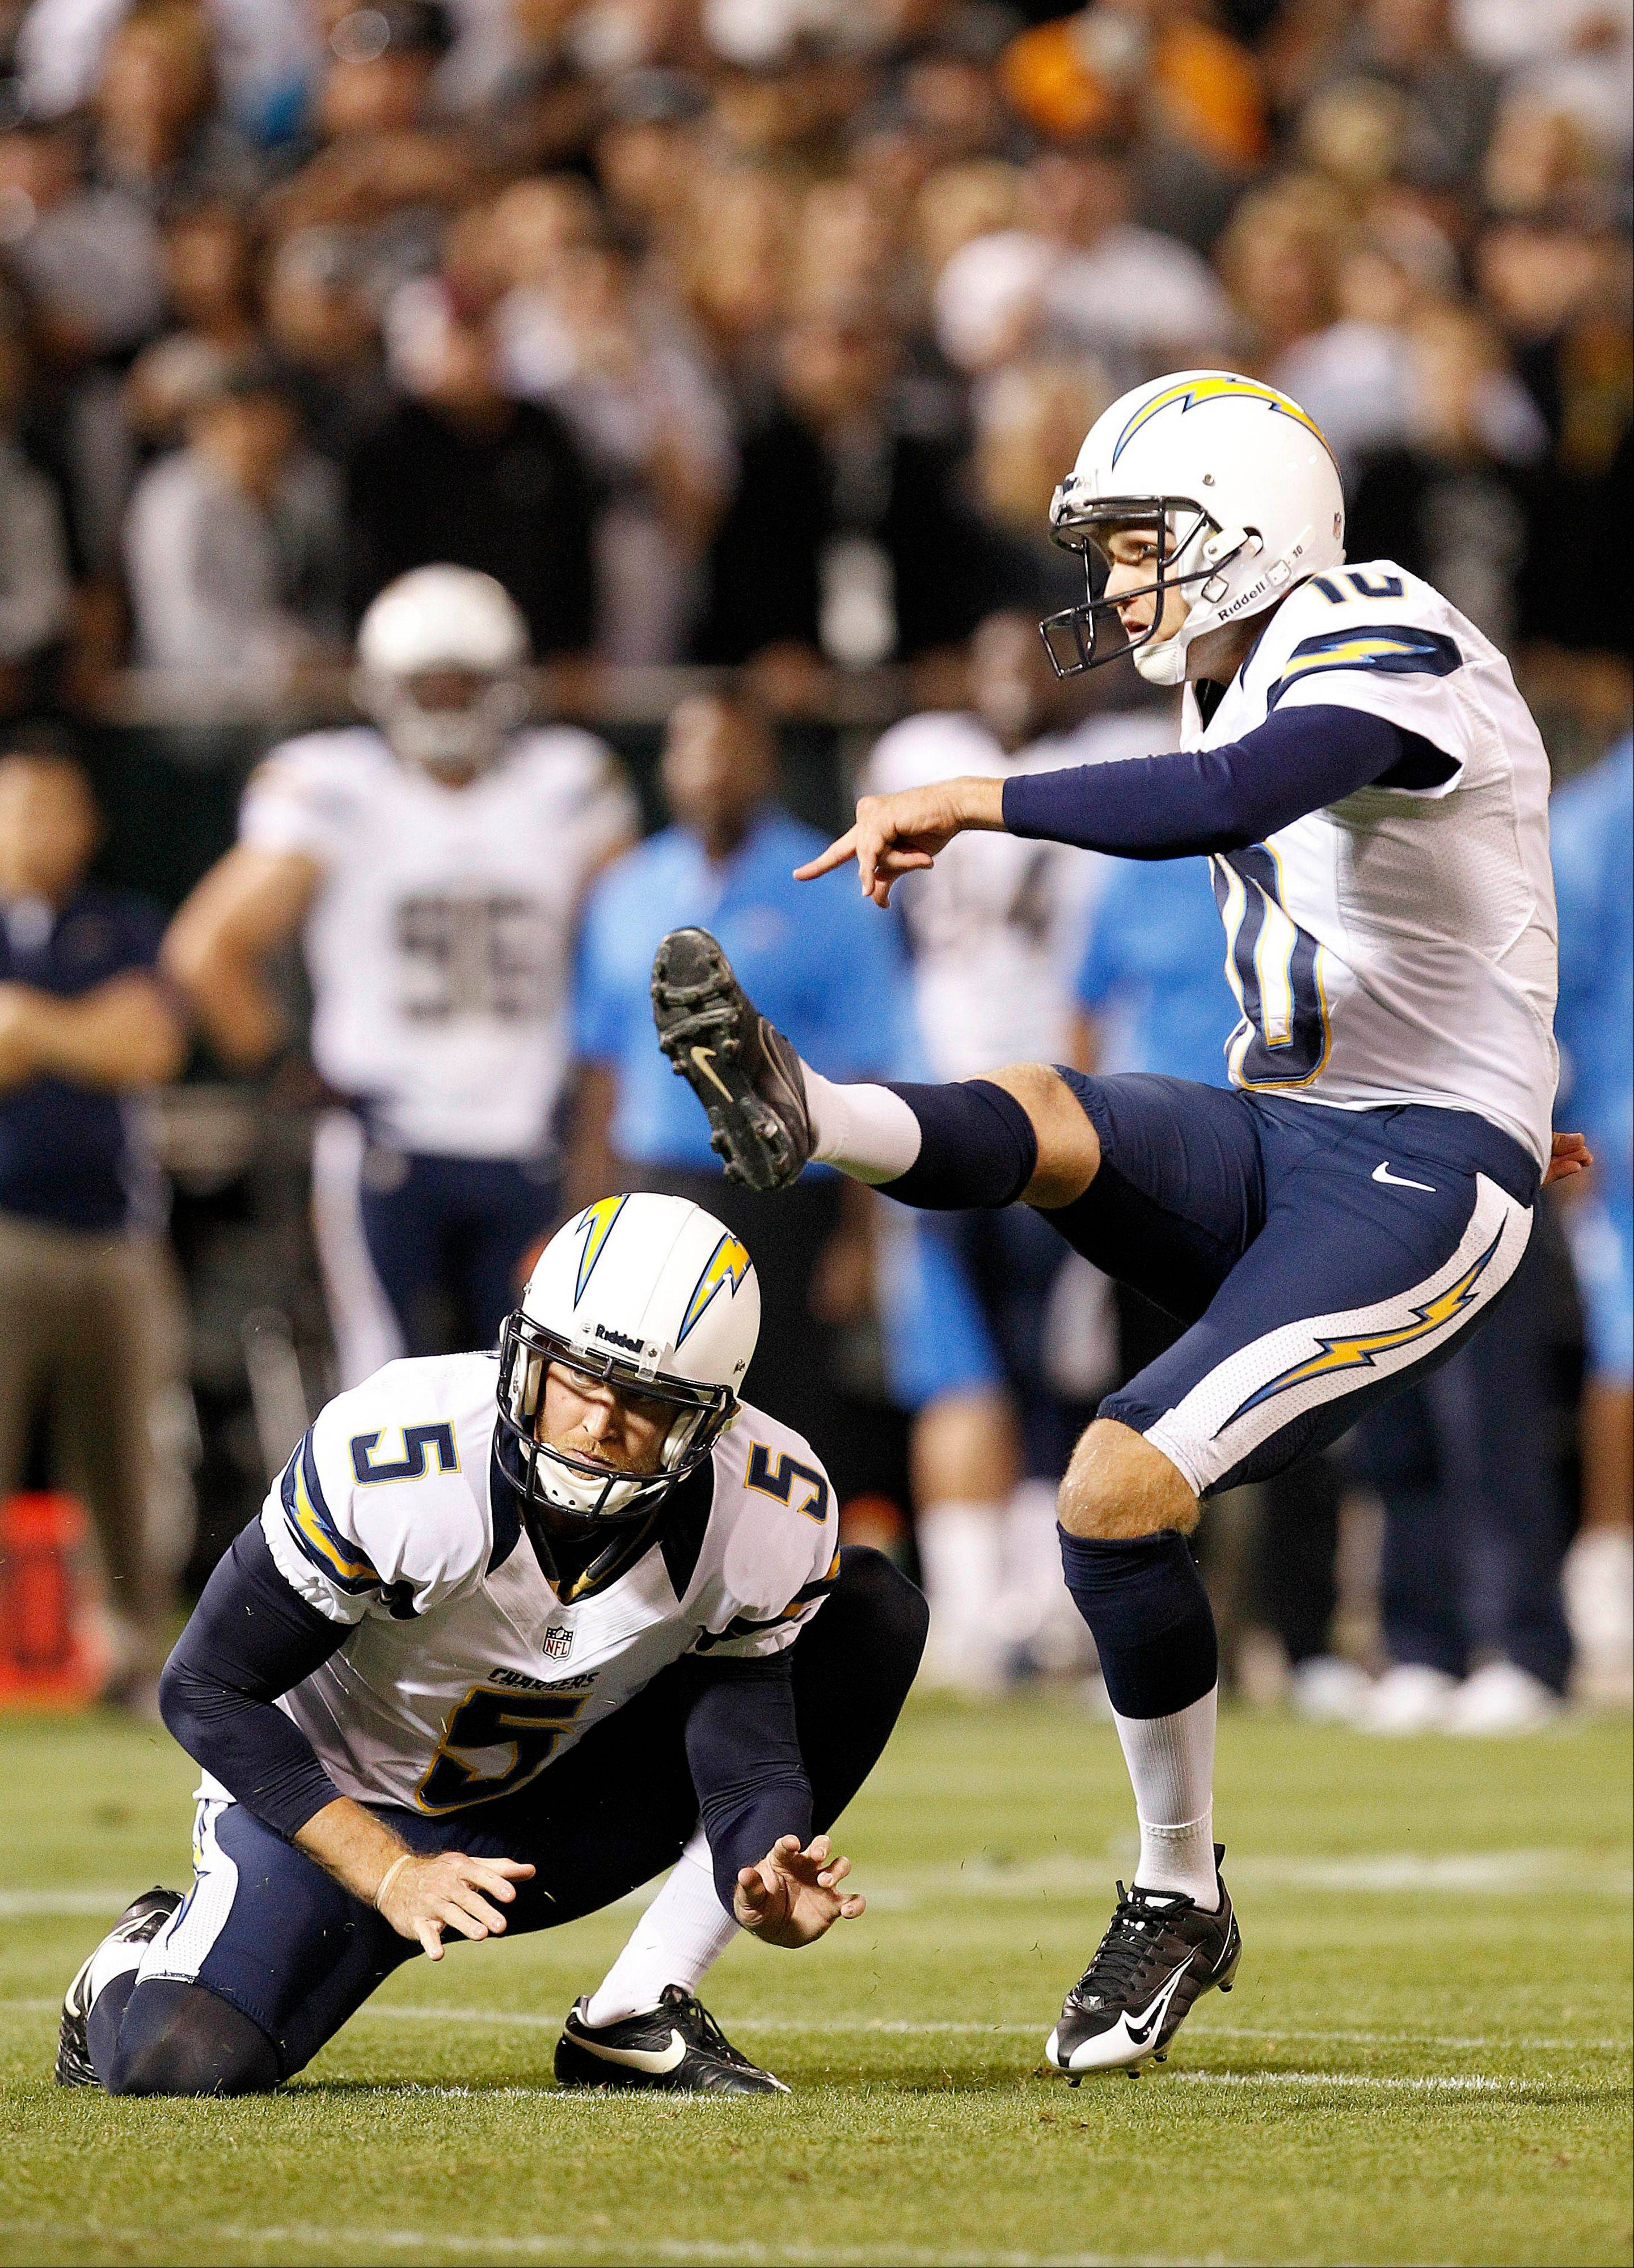 San Diego Chargers kicker Nate Kaeding boots one of his five field goals Monday against the Oakland Raiders in Oakland, Calif.